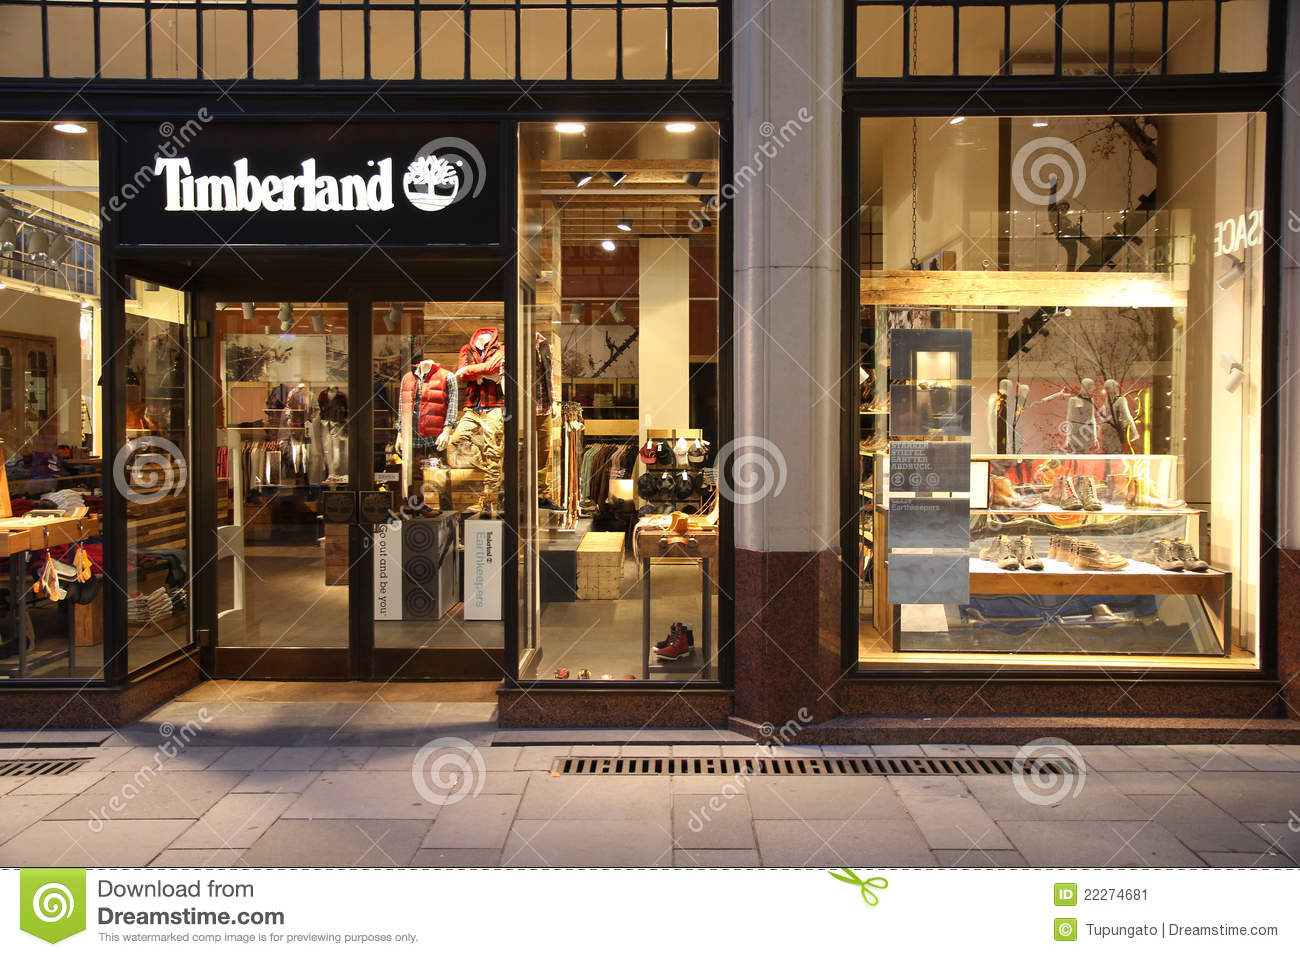 vienna september 8 timberland store on september 8 2011 in vienna